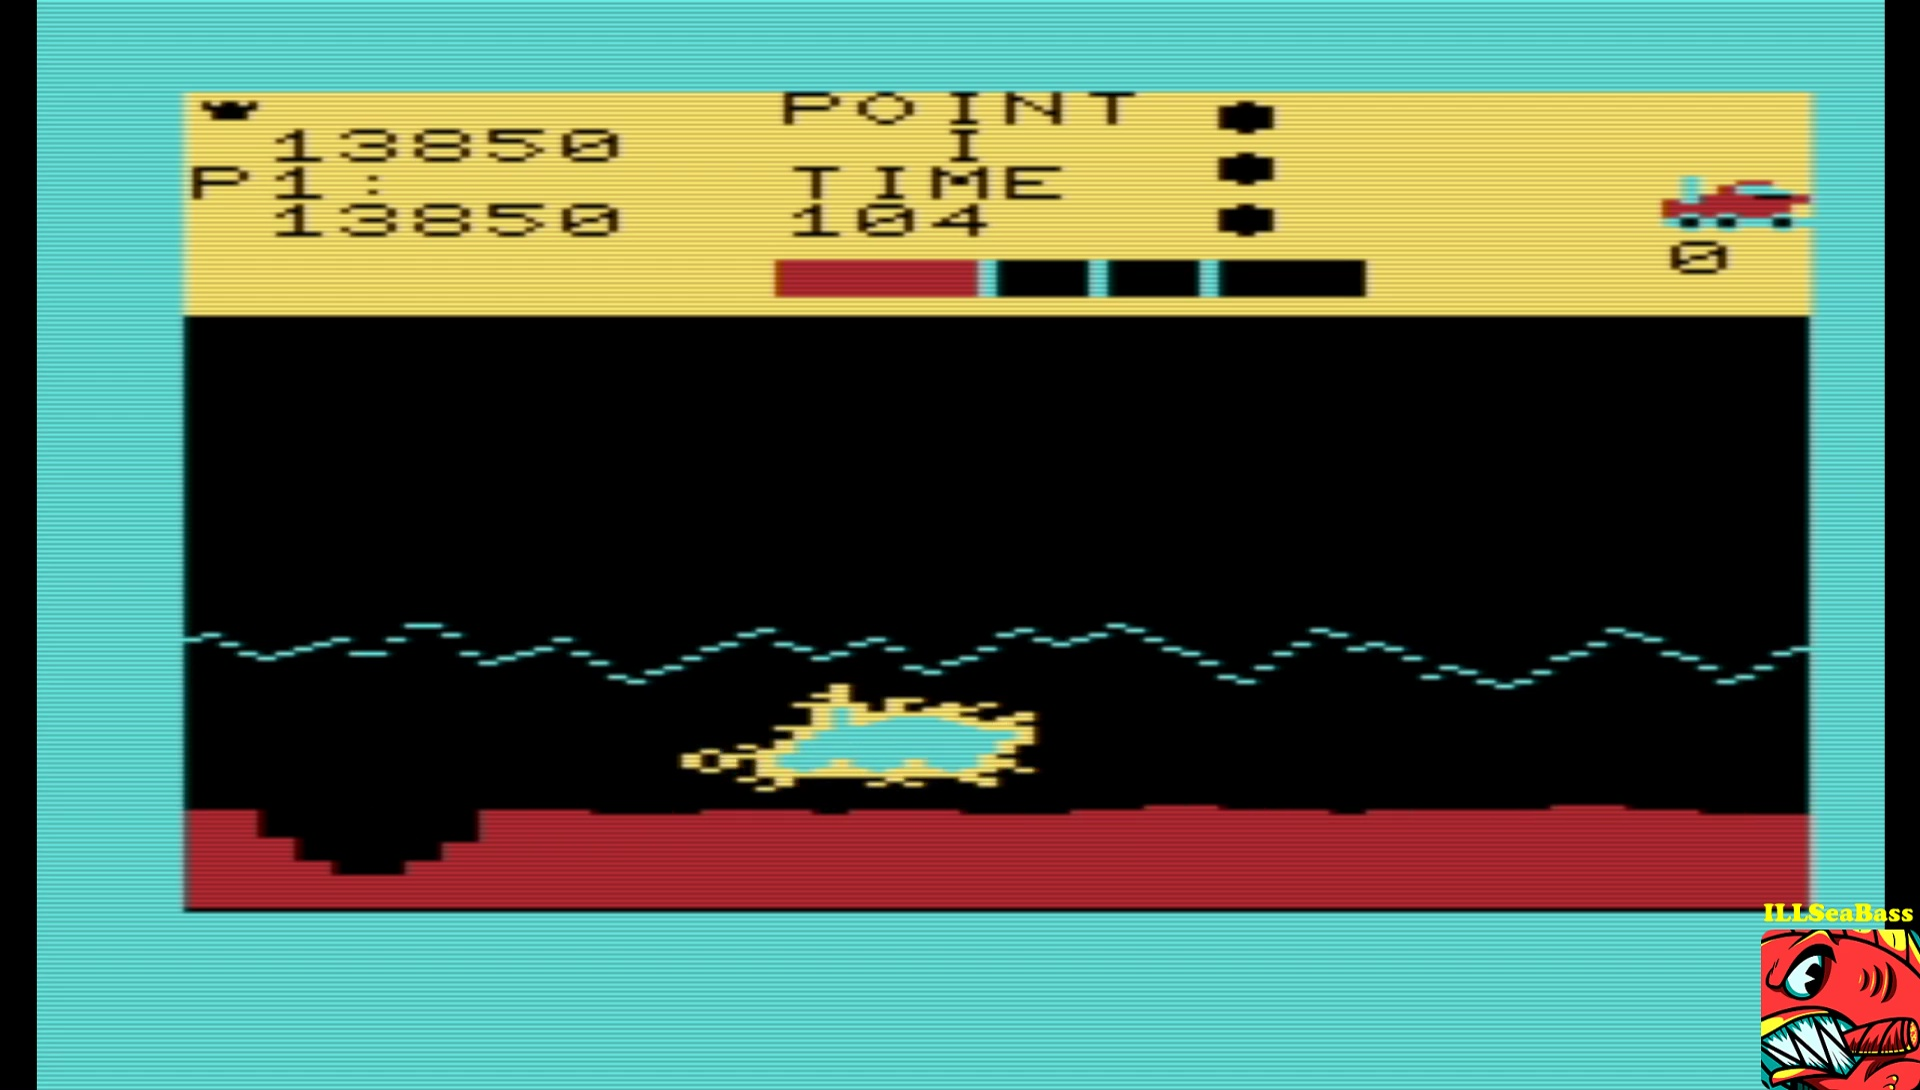 ILLSeaBass: Moon Patrol (Commodore VIC-20 Emulated) 13,850 points on 2017-06-09 22:33:58